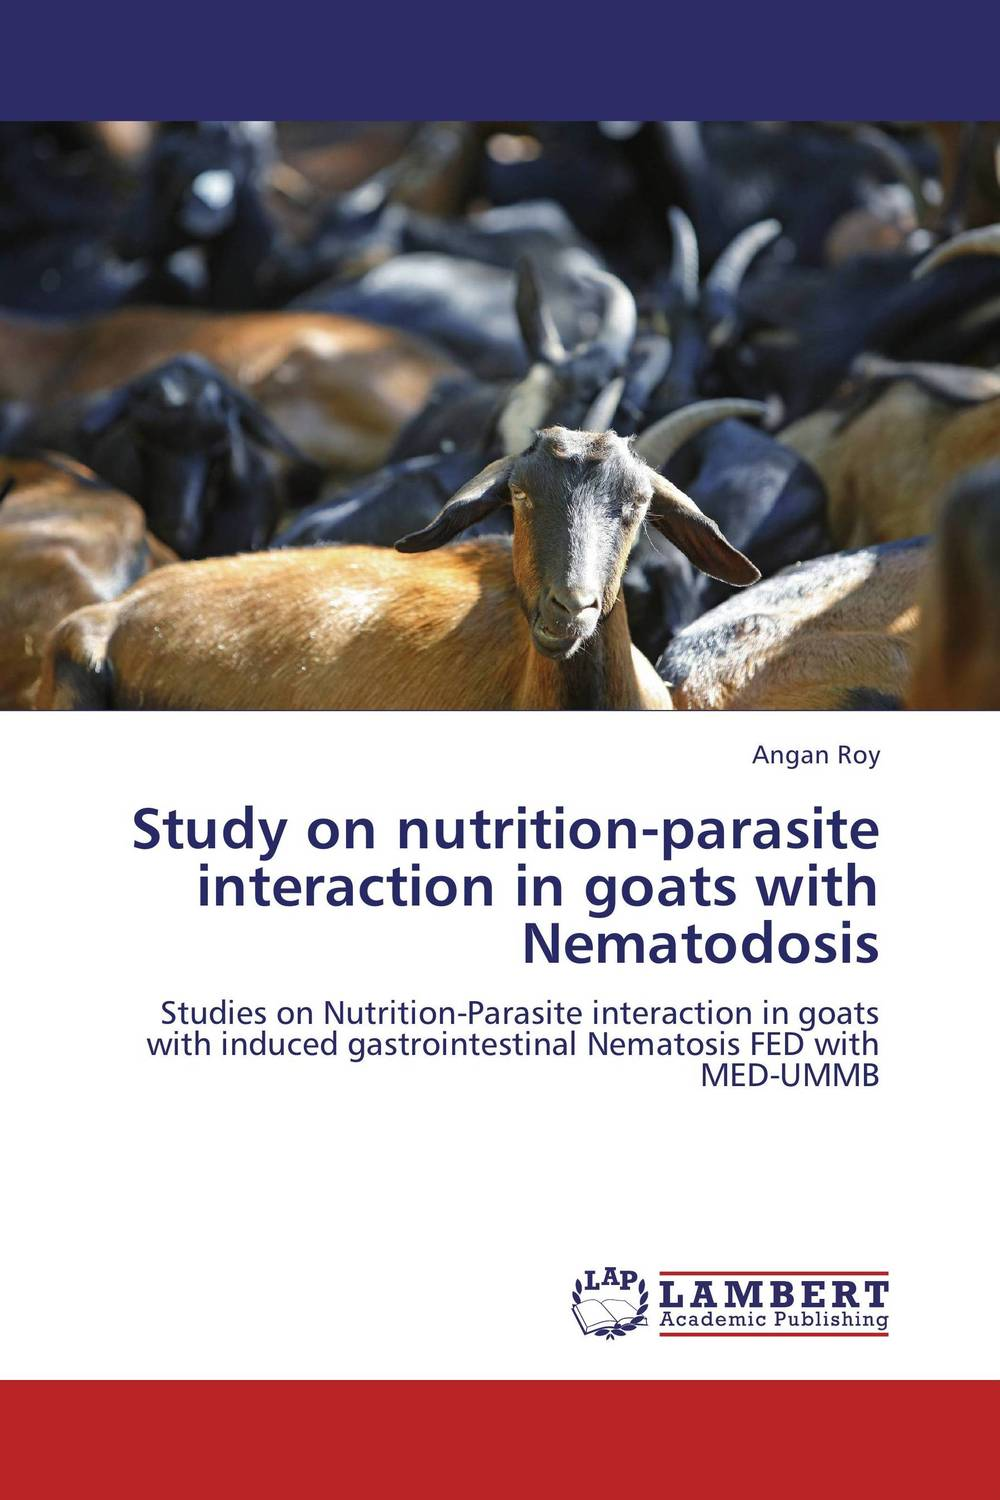 Study on nutrition-parasite interaction in goats with Nematodosis prostar whey protein от ultimate nutrition пермь